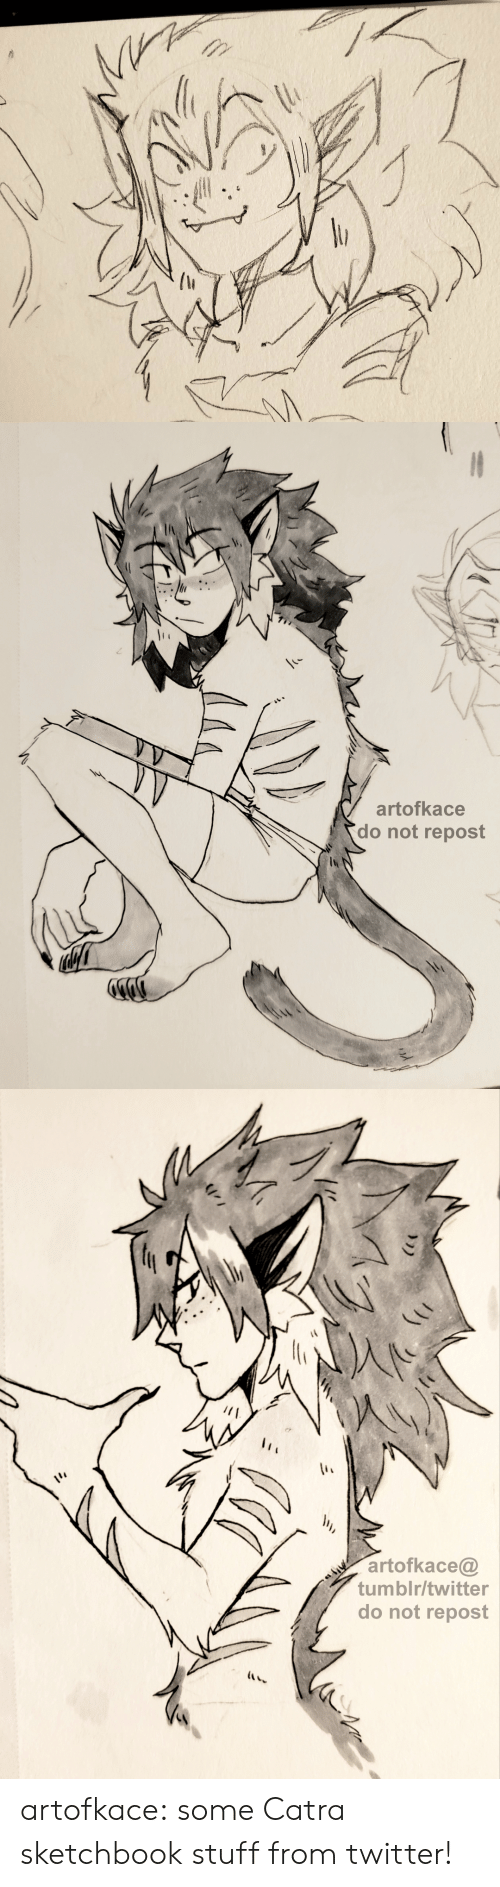 Tumblr, Twitter, and Blog: /-   artofkace  do not repost   artofkace@  tumblr/twitter  do not repost  I artofkace:  some Catra sketchbook stuff from twitter!